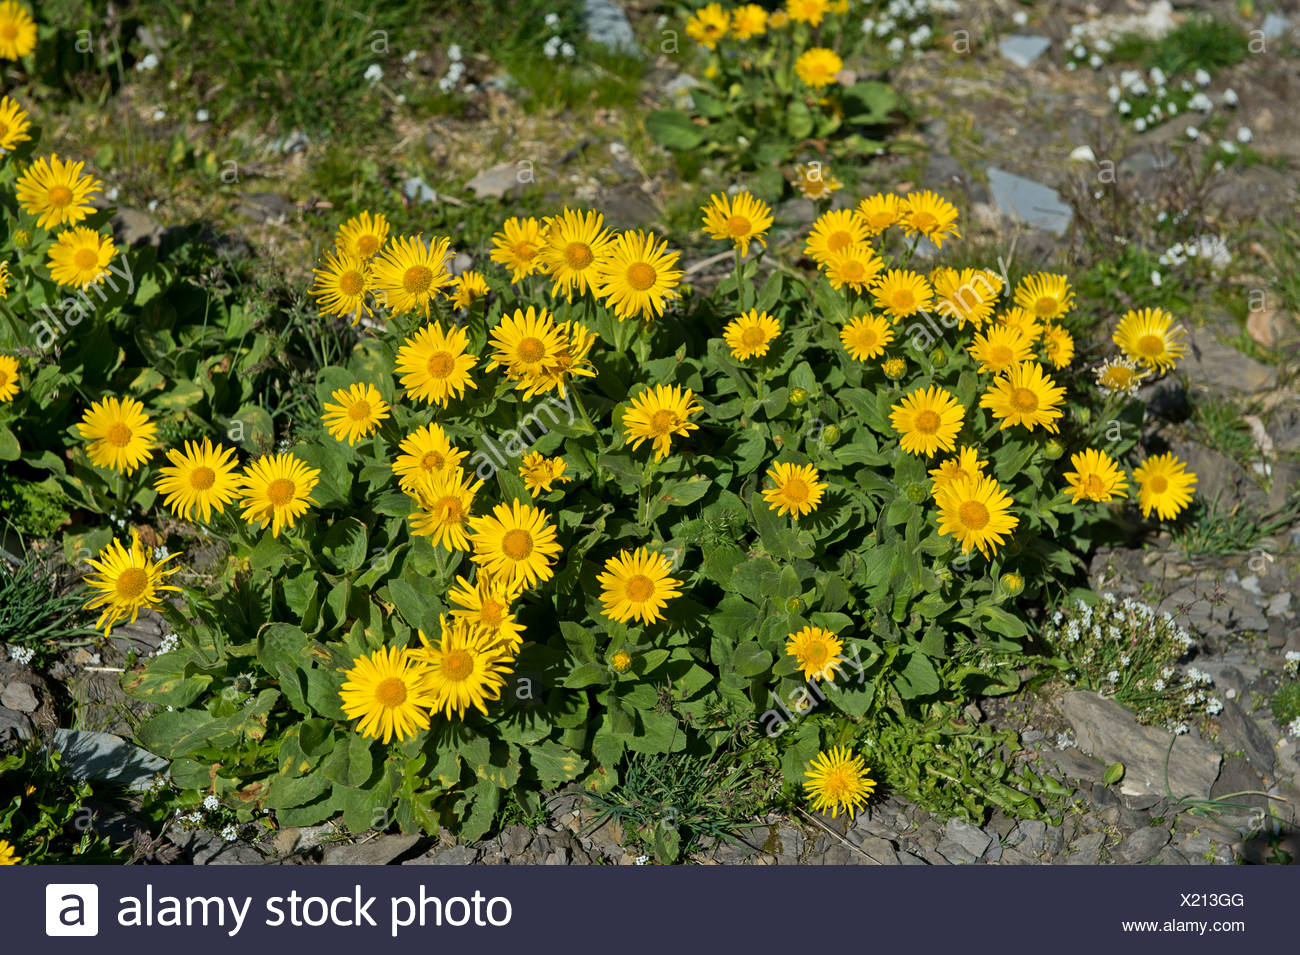 Doronicum (Doronicum grandiflorum), Canton of Valais, Switzerland - Stock Image